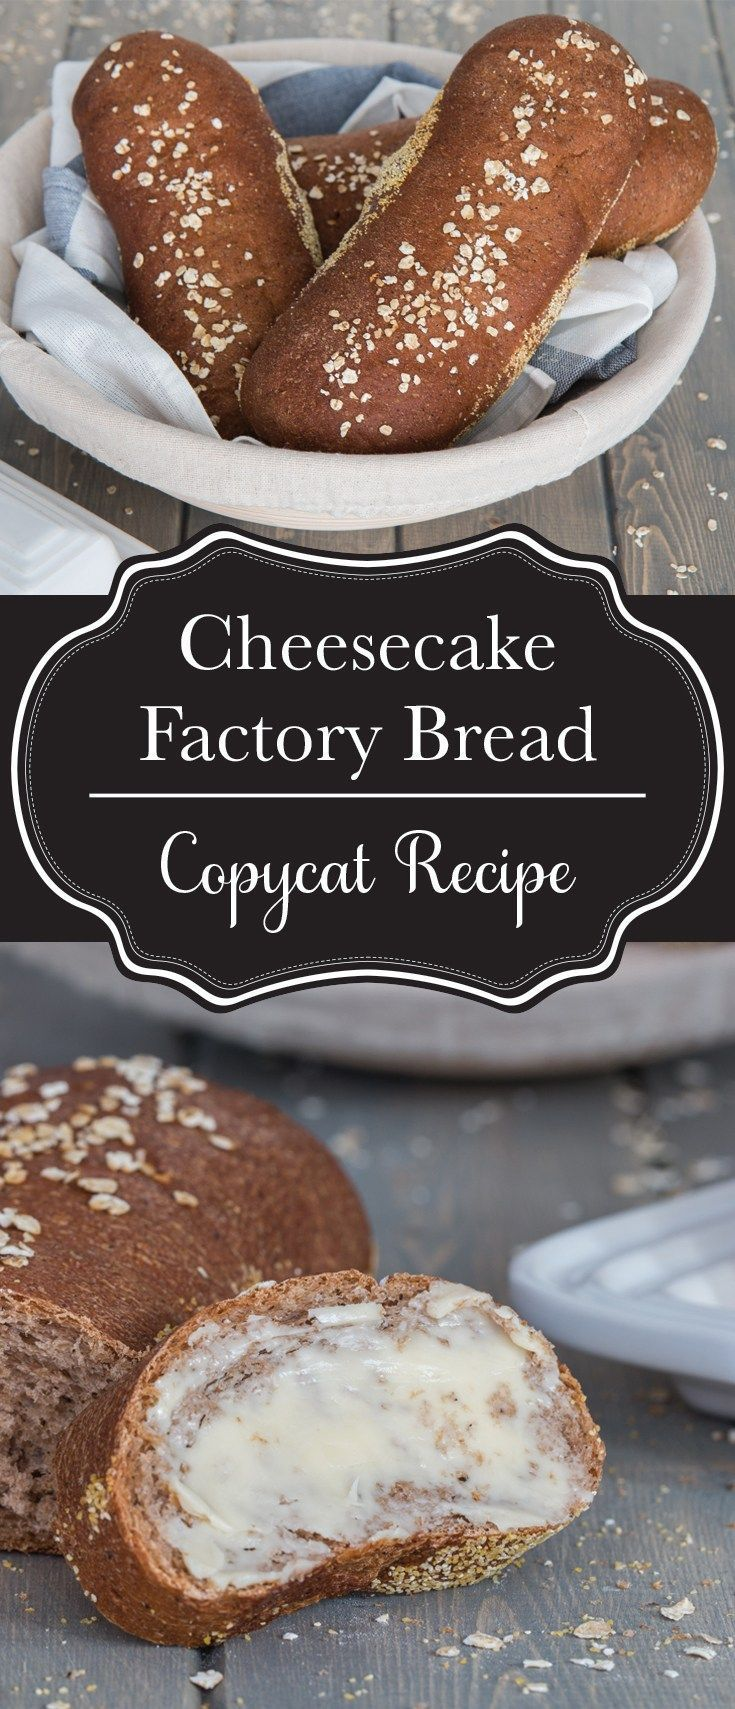 Cheesecake Factory brown bread copycat recipe. This honey wheat brown bread is everyone's favourite, and now you can make it whenever you want at home! See why it's been the most popular recipe on Kitchen Trials since 2015! #cheesecakefactoryrecipes